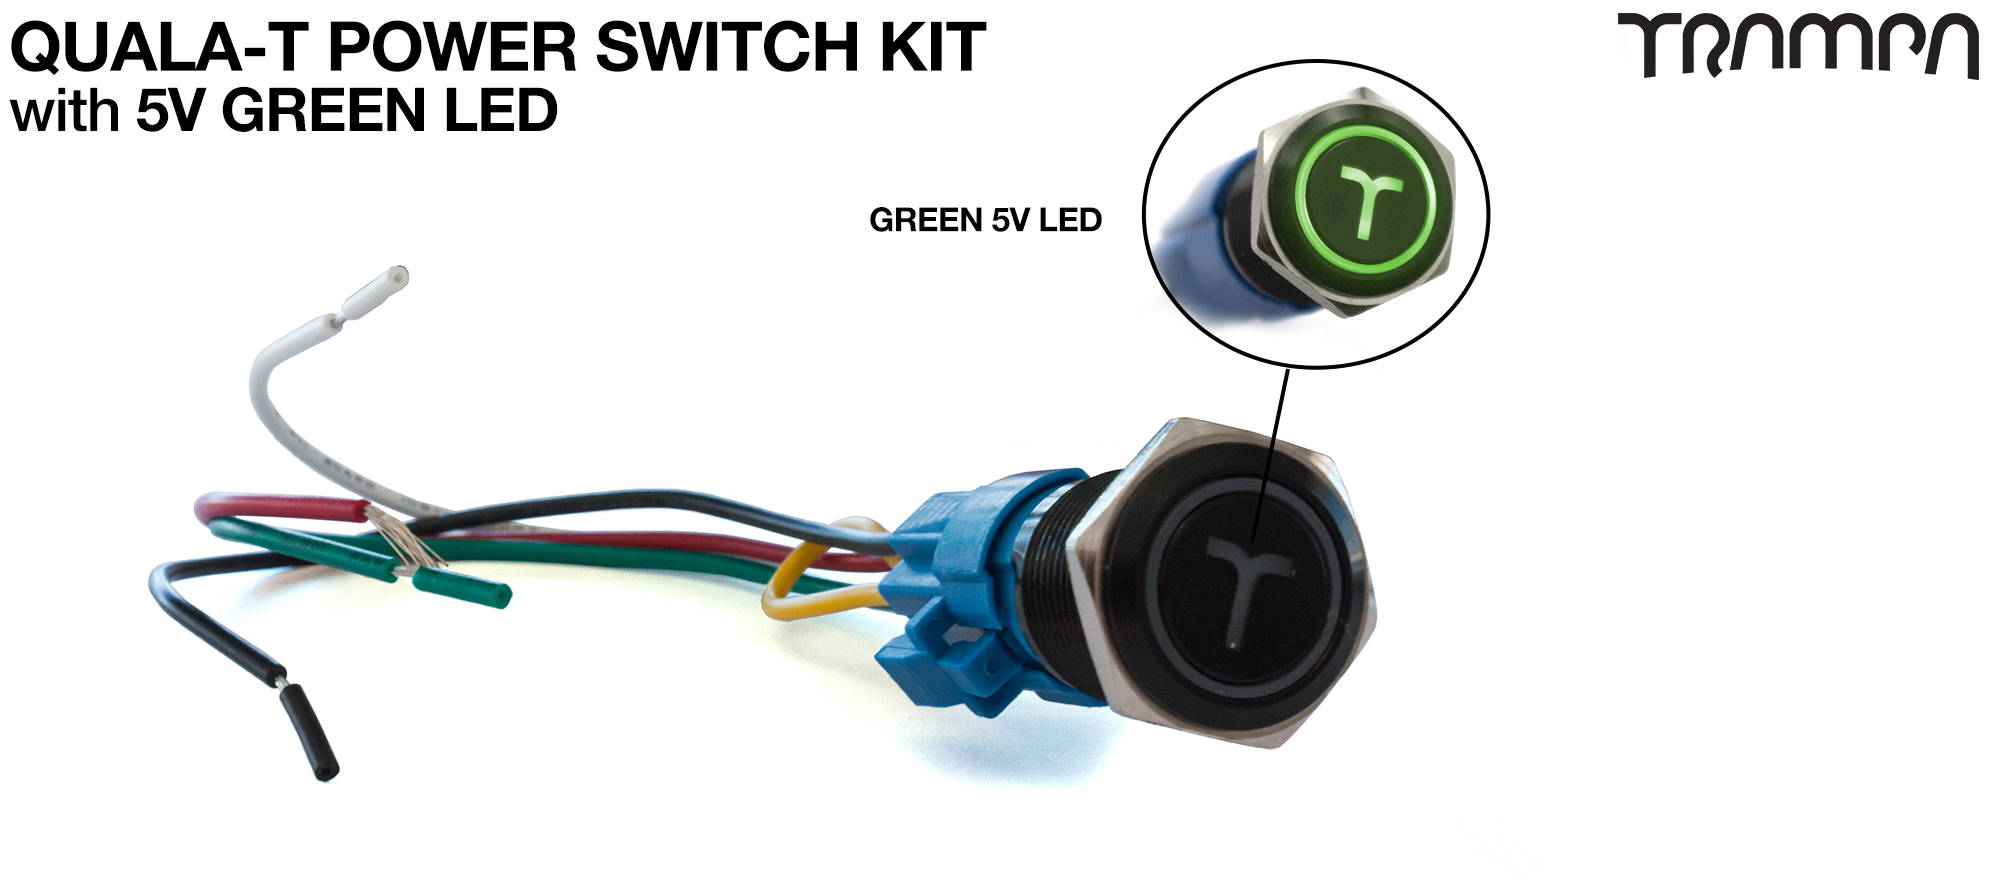 GREEN LED QUALA-T Power Switch Kit with 16mm Fixing Nut & Cable Harness